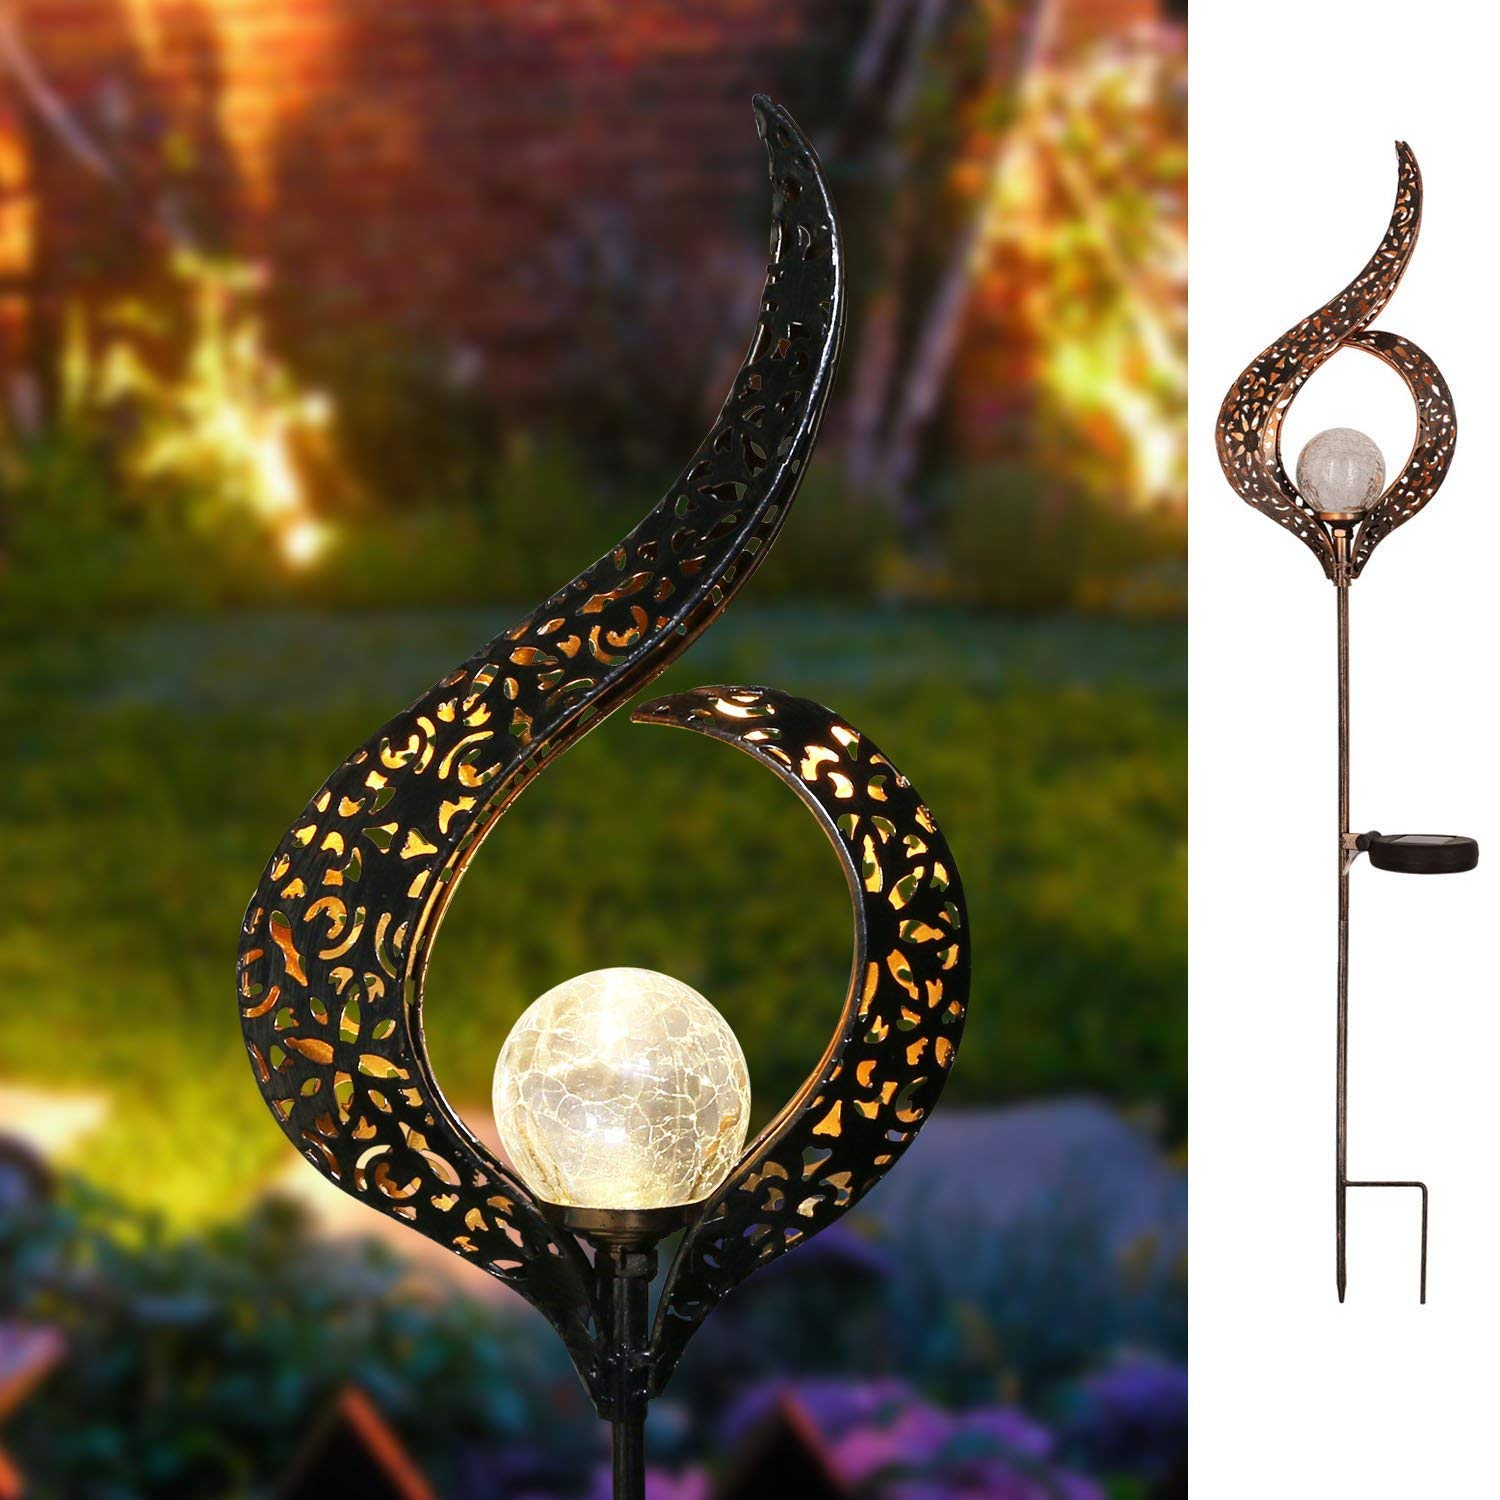 Homeimpro Outdoor Solar Lights Garden Crackle Glass Globe Stake Lights,Waterproof LED Lights for Garden,Lawn,Patio or Courtyard